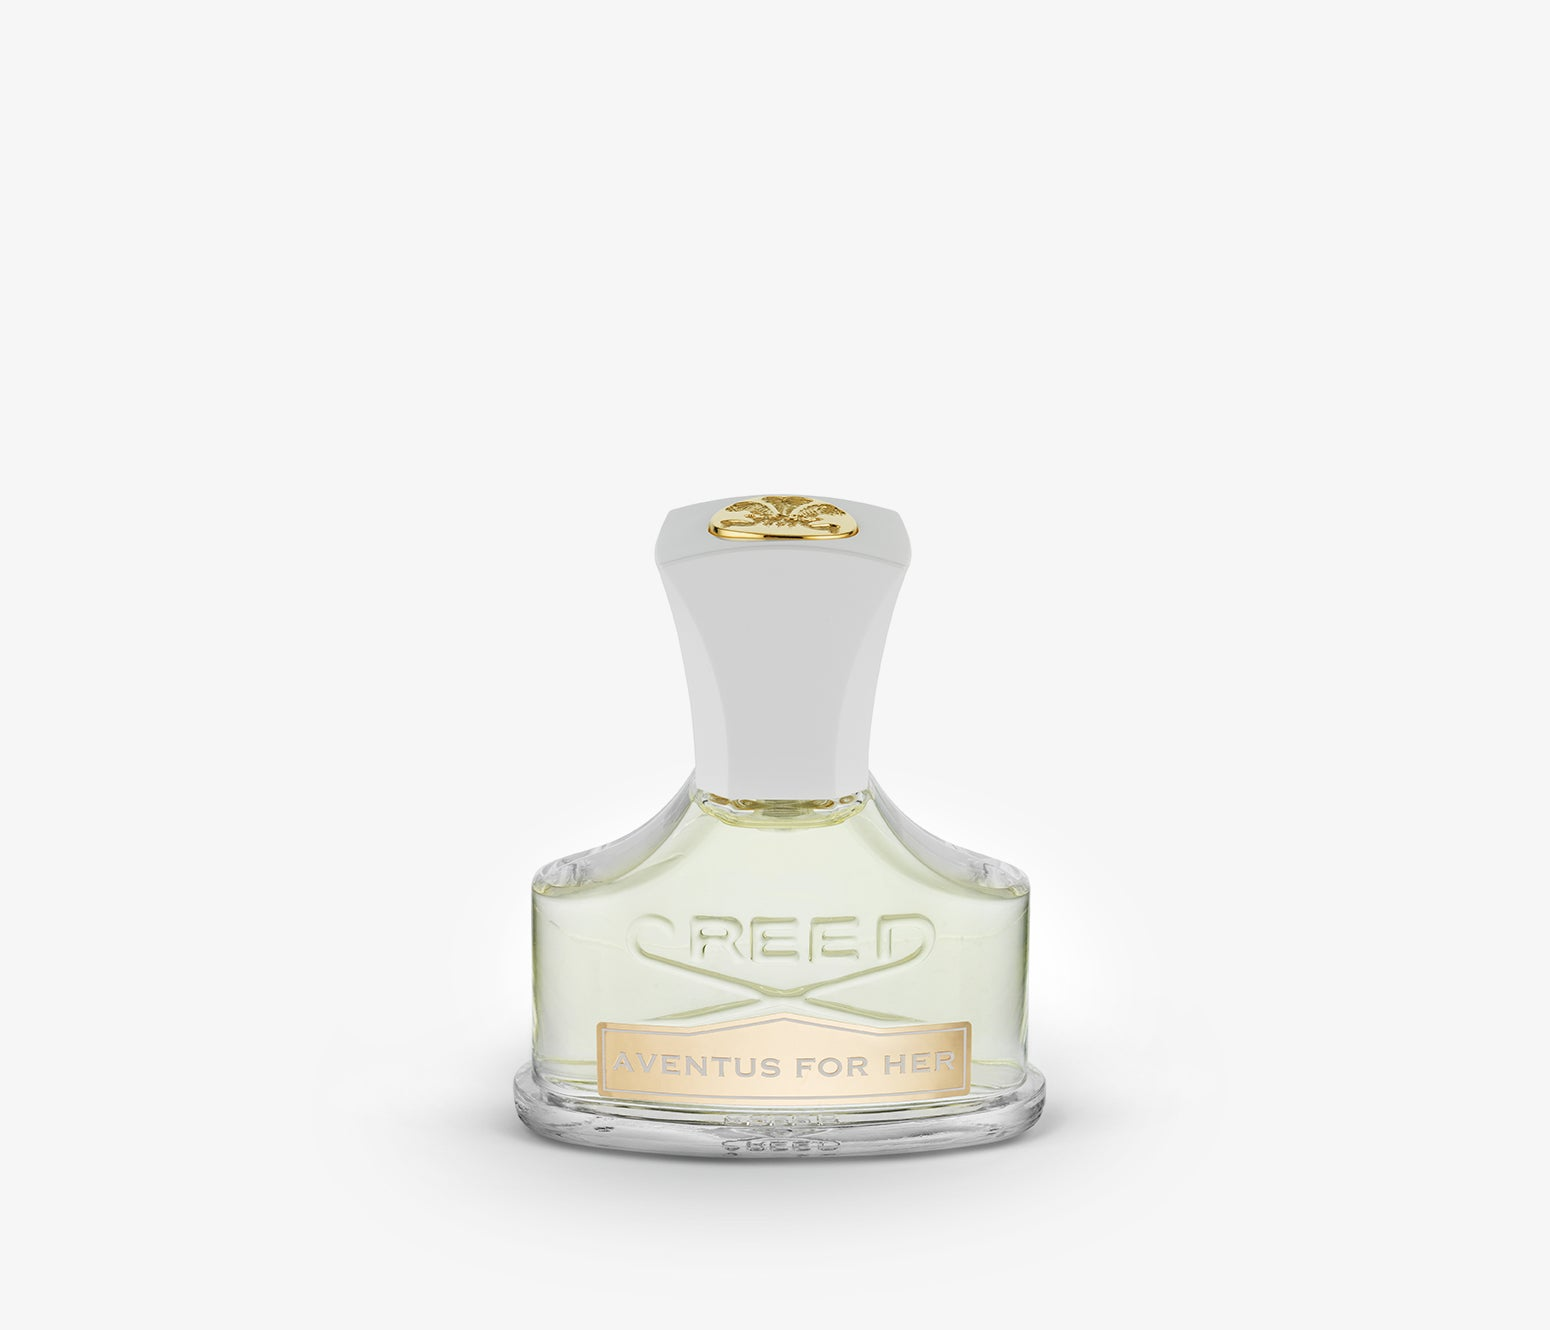 Creed - Aventus for Her - 30ml - JDL001 - Product Image - Fragrance - Les Senteurs